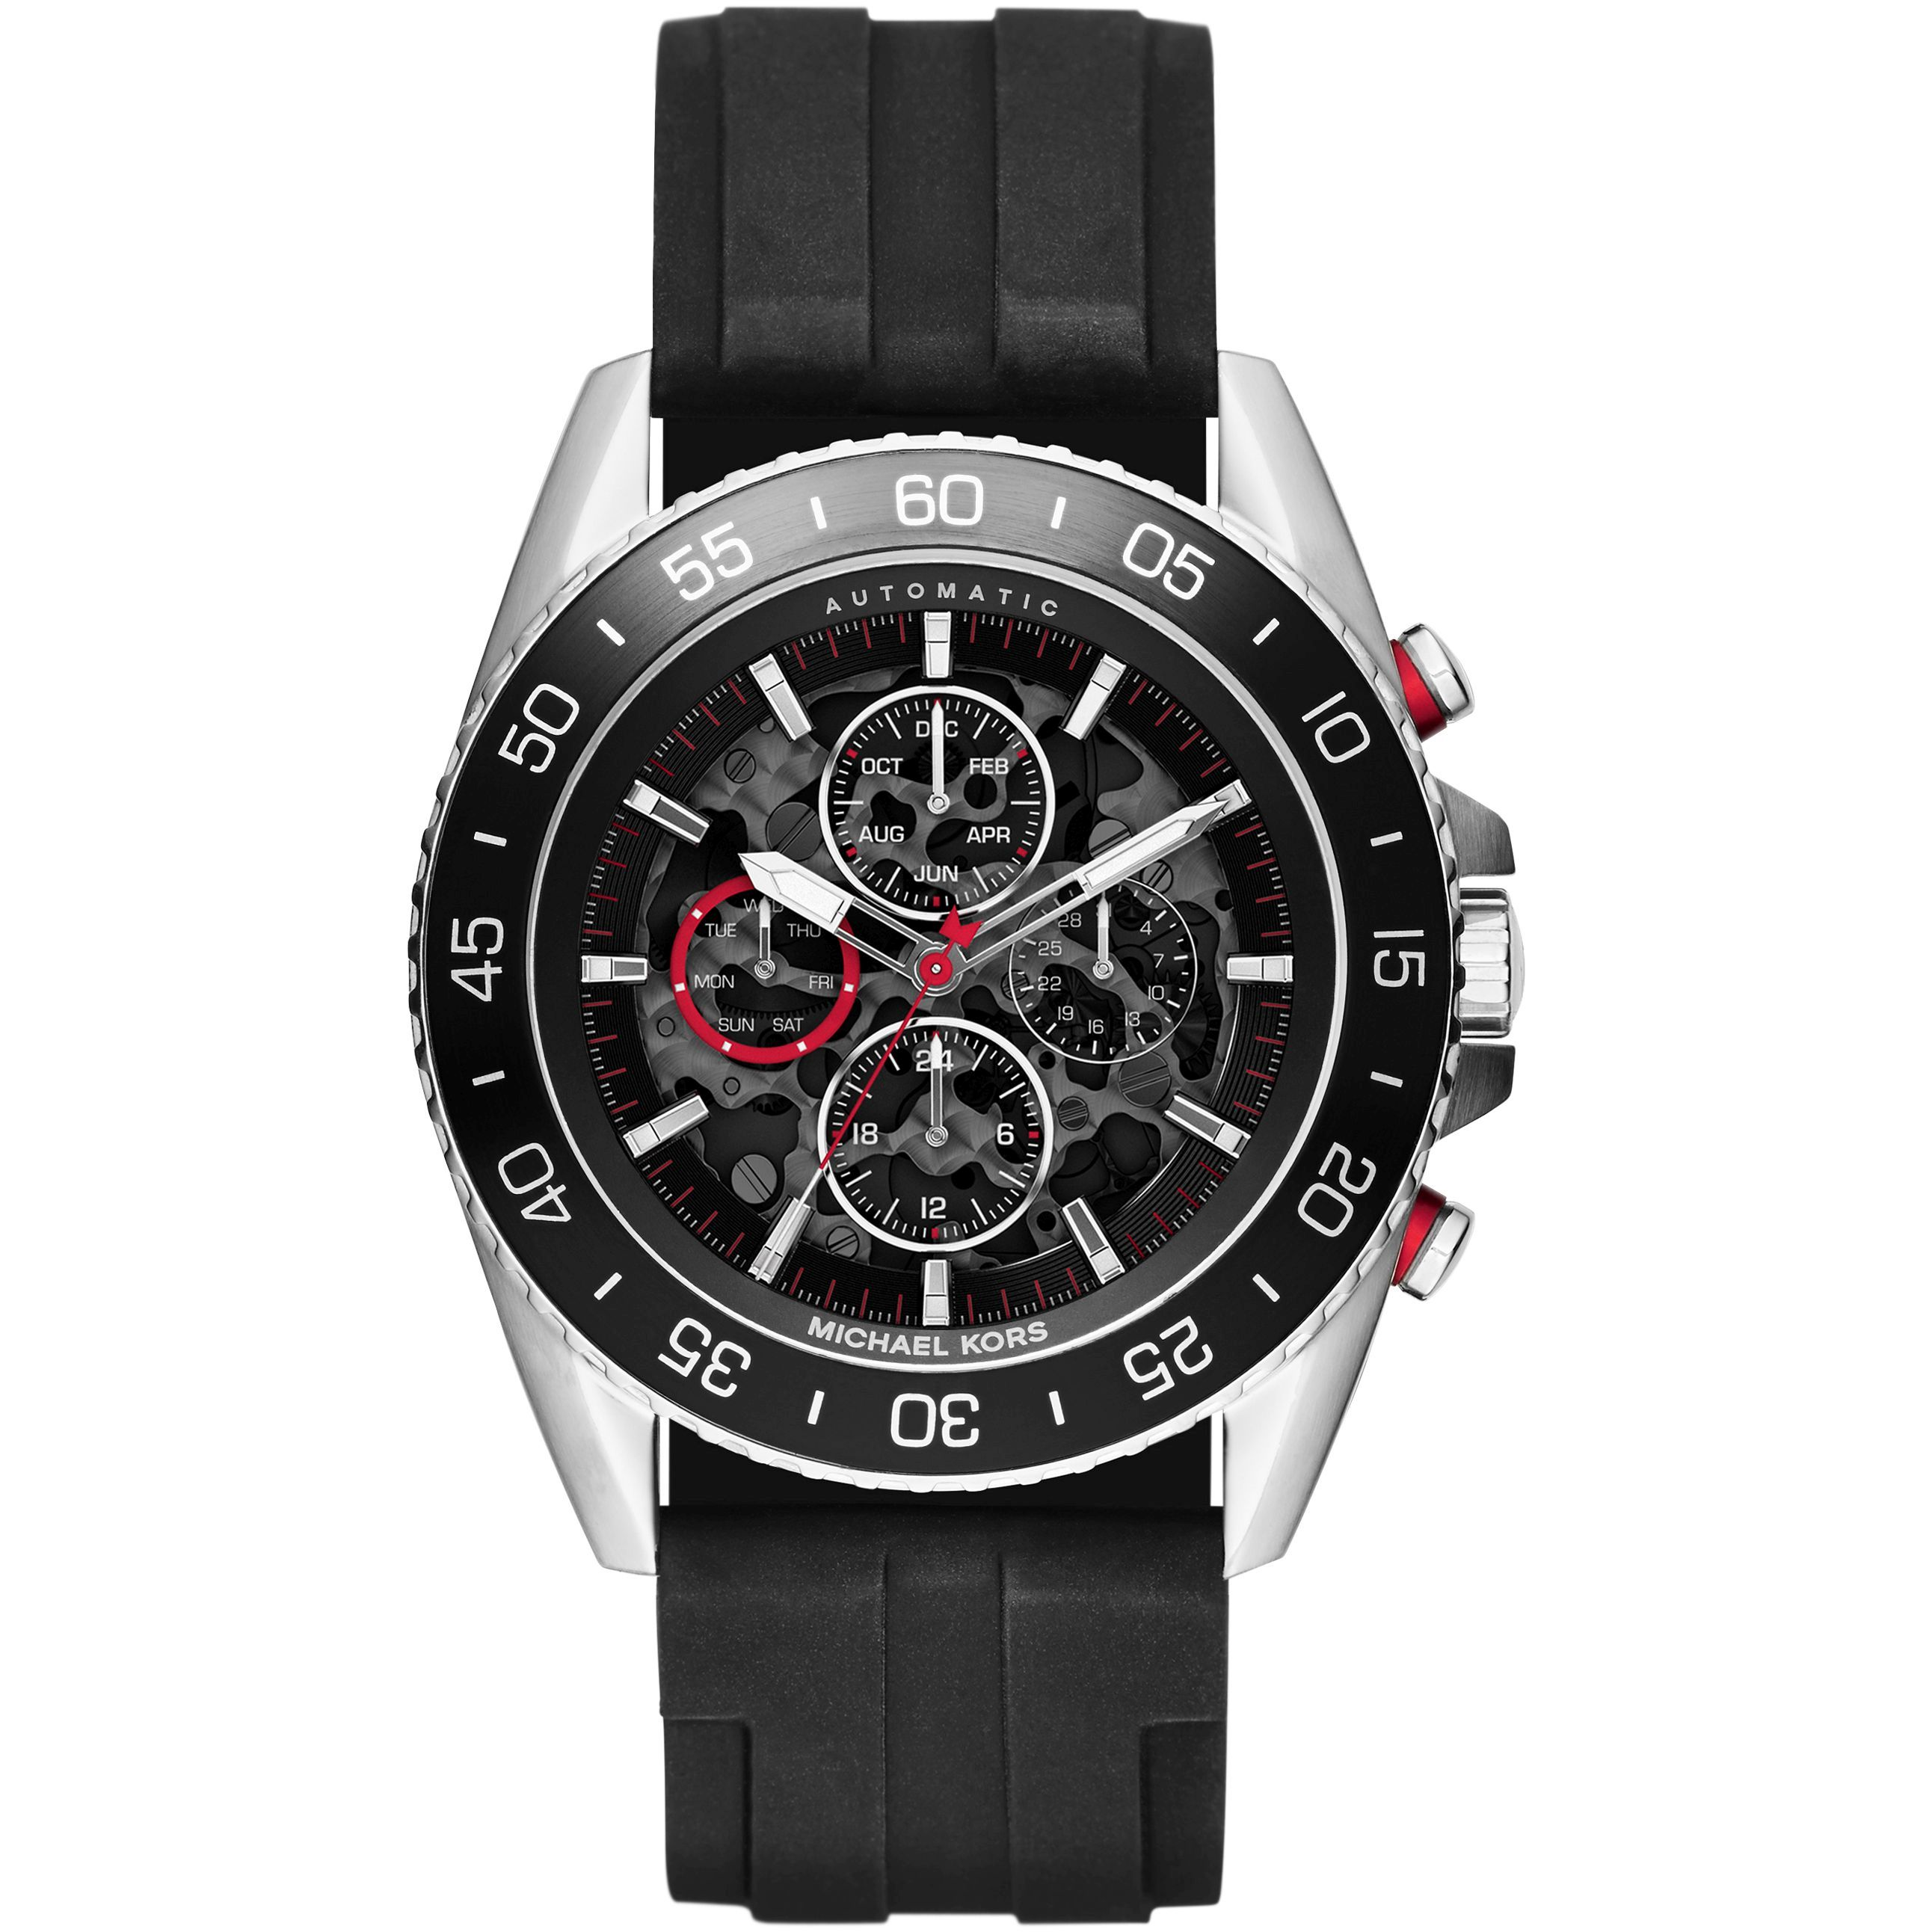 94aadc9d8 Gents Michael Kors Jetmaster Watch (MK9013) | WatchShop.com™